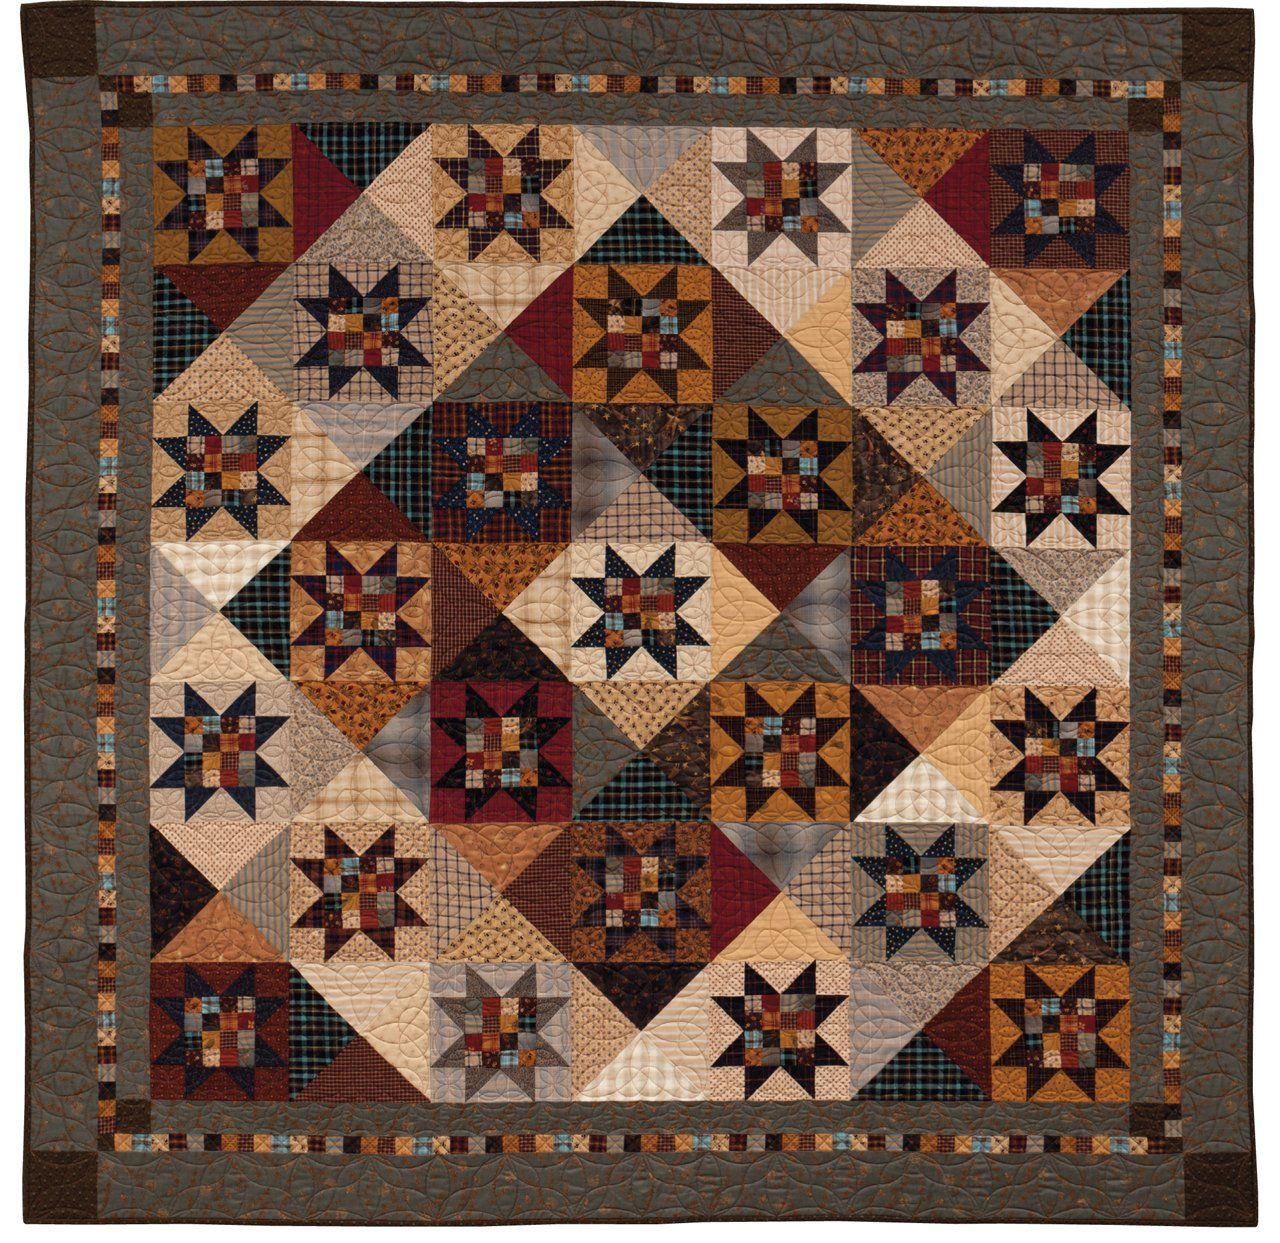 At Home with Country Quilts: 13 Patchwork Patterns: Cheryl Wall ... : country quilts patterns - Adamdwight.com